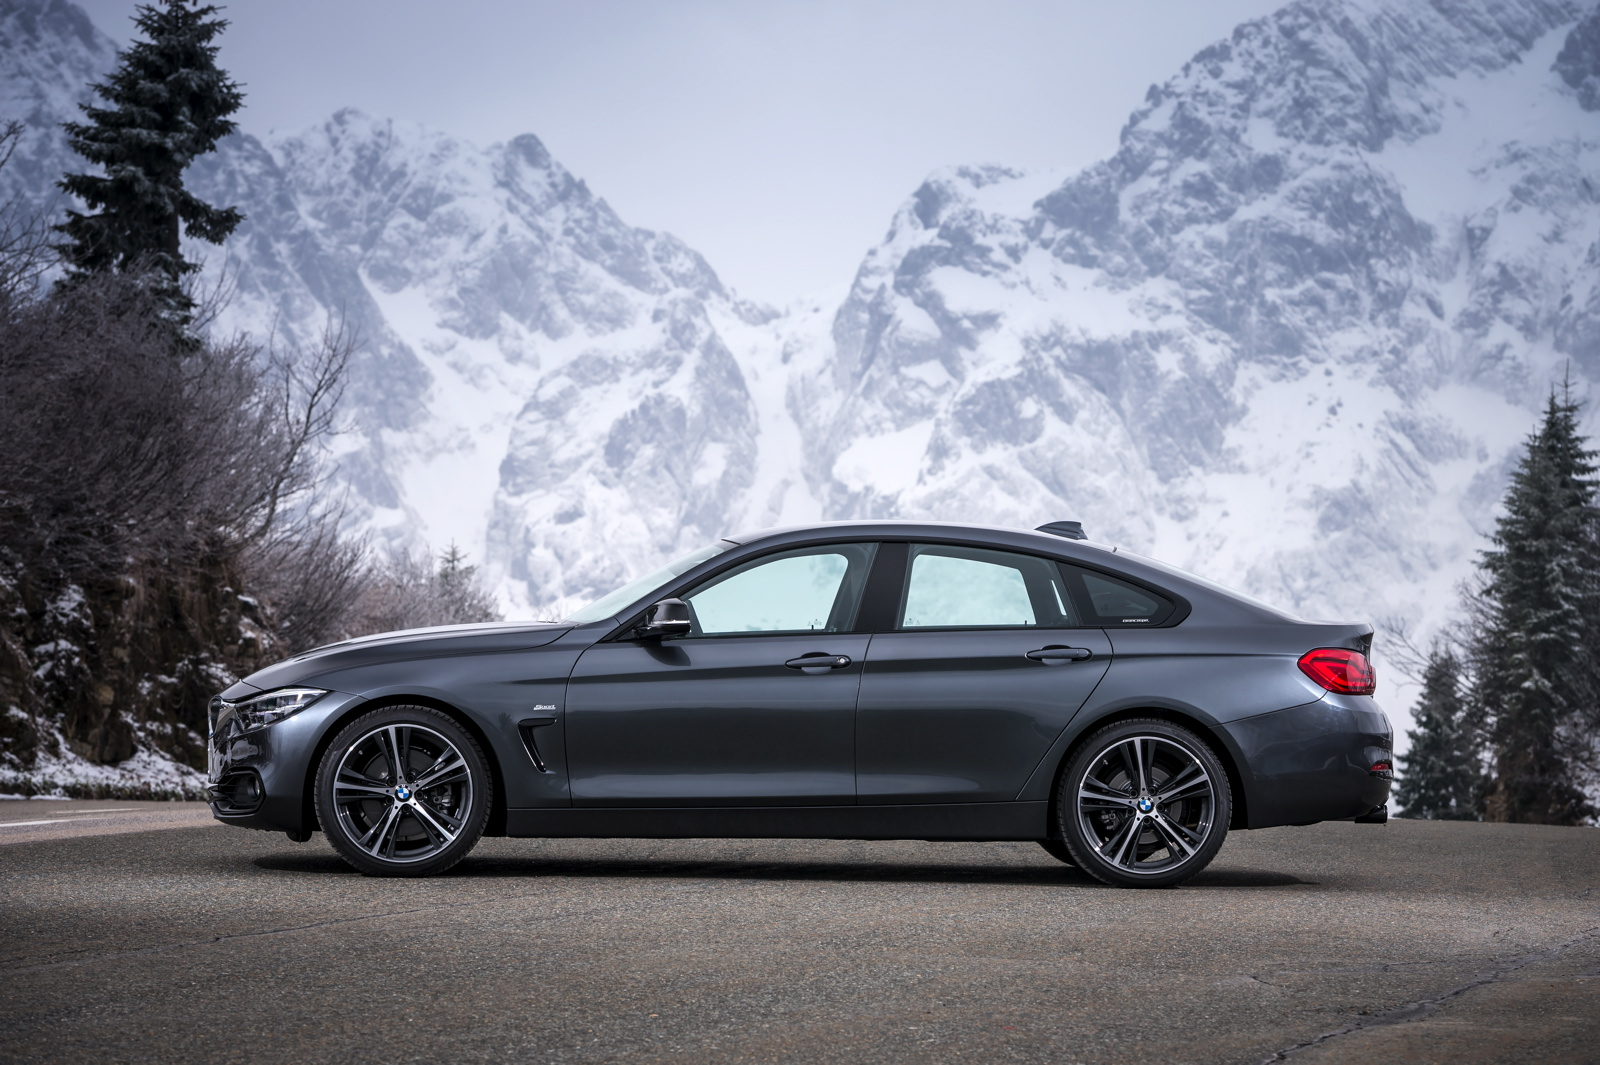 Top Gear Says Bmw 4 Series Gran Coupe Is Possibly Bmw S